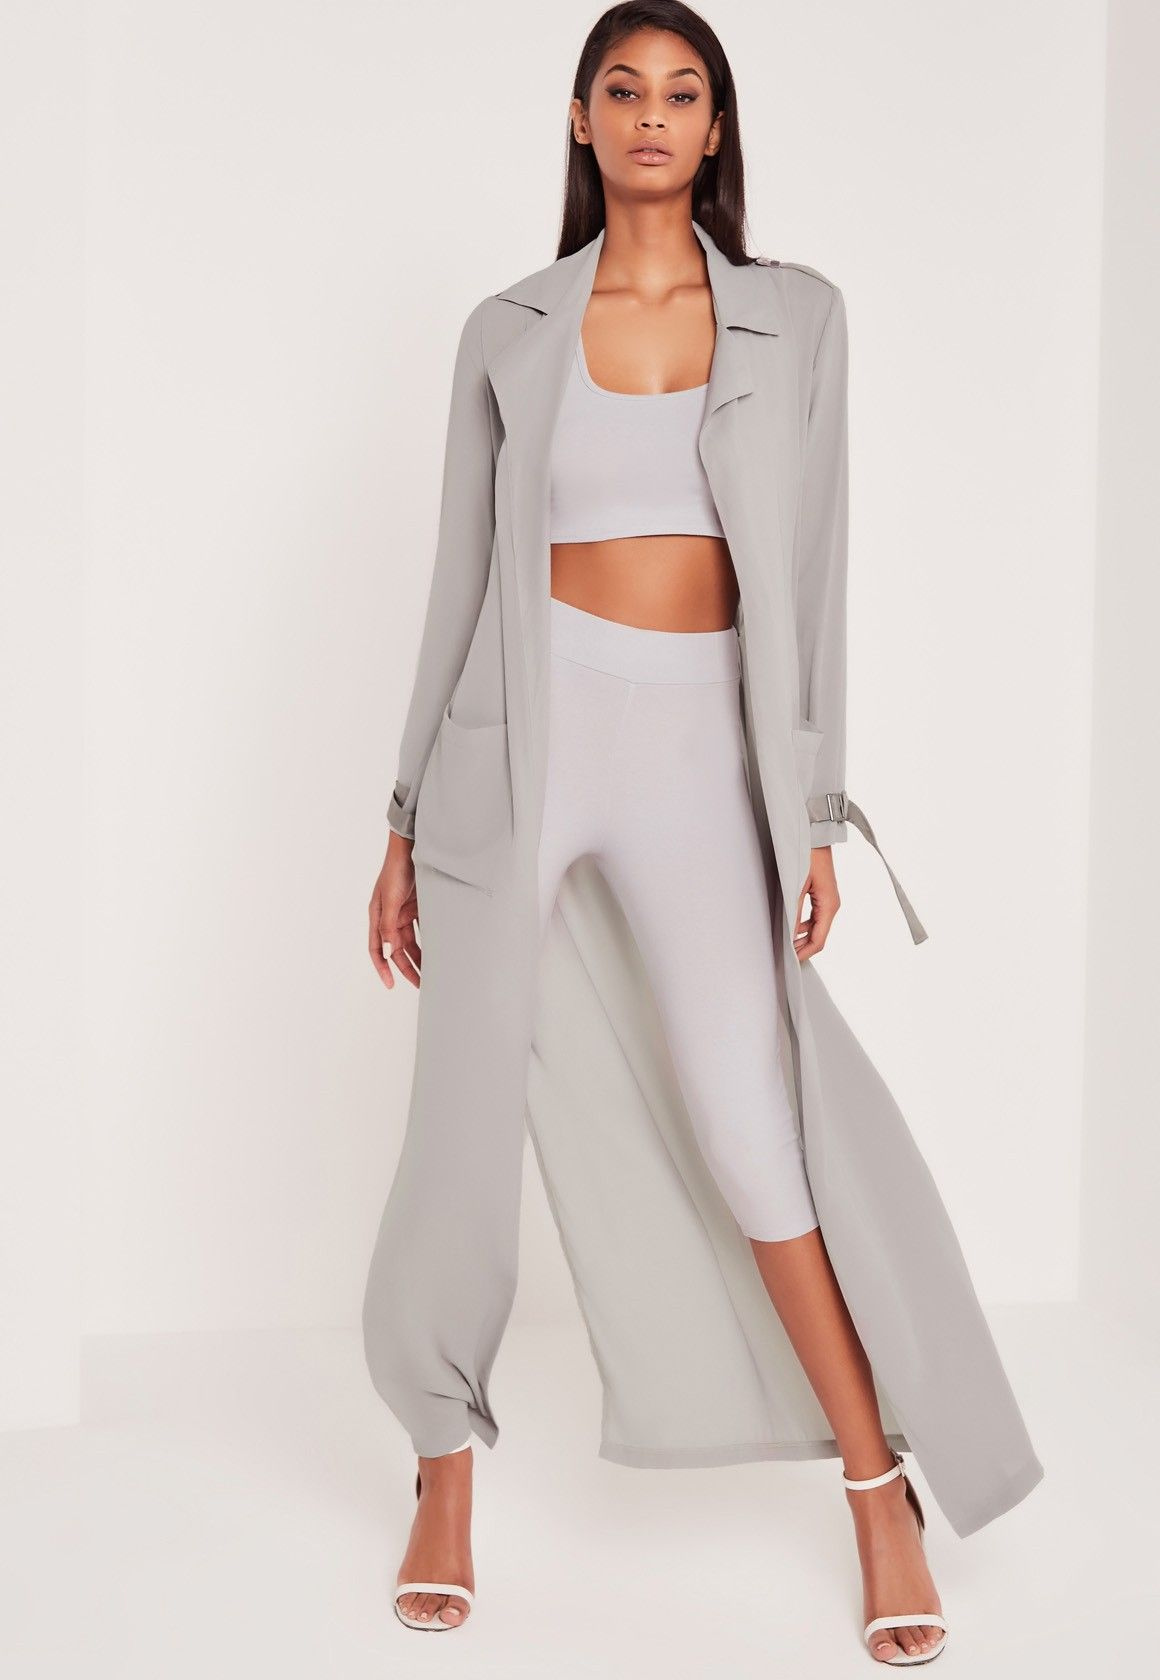 8b2c14f8d6 Missguided - Carli Bybel Maxi Duster Coat Grey | $$ can't buy style ...